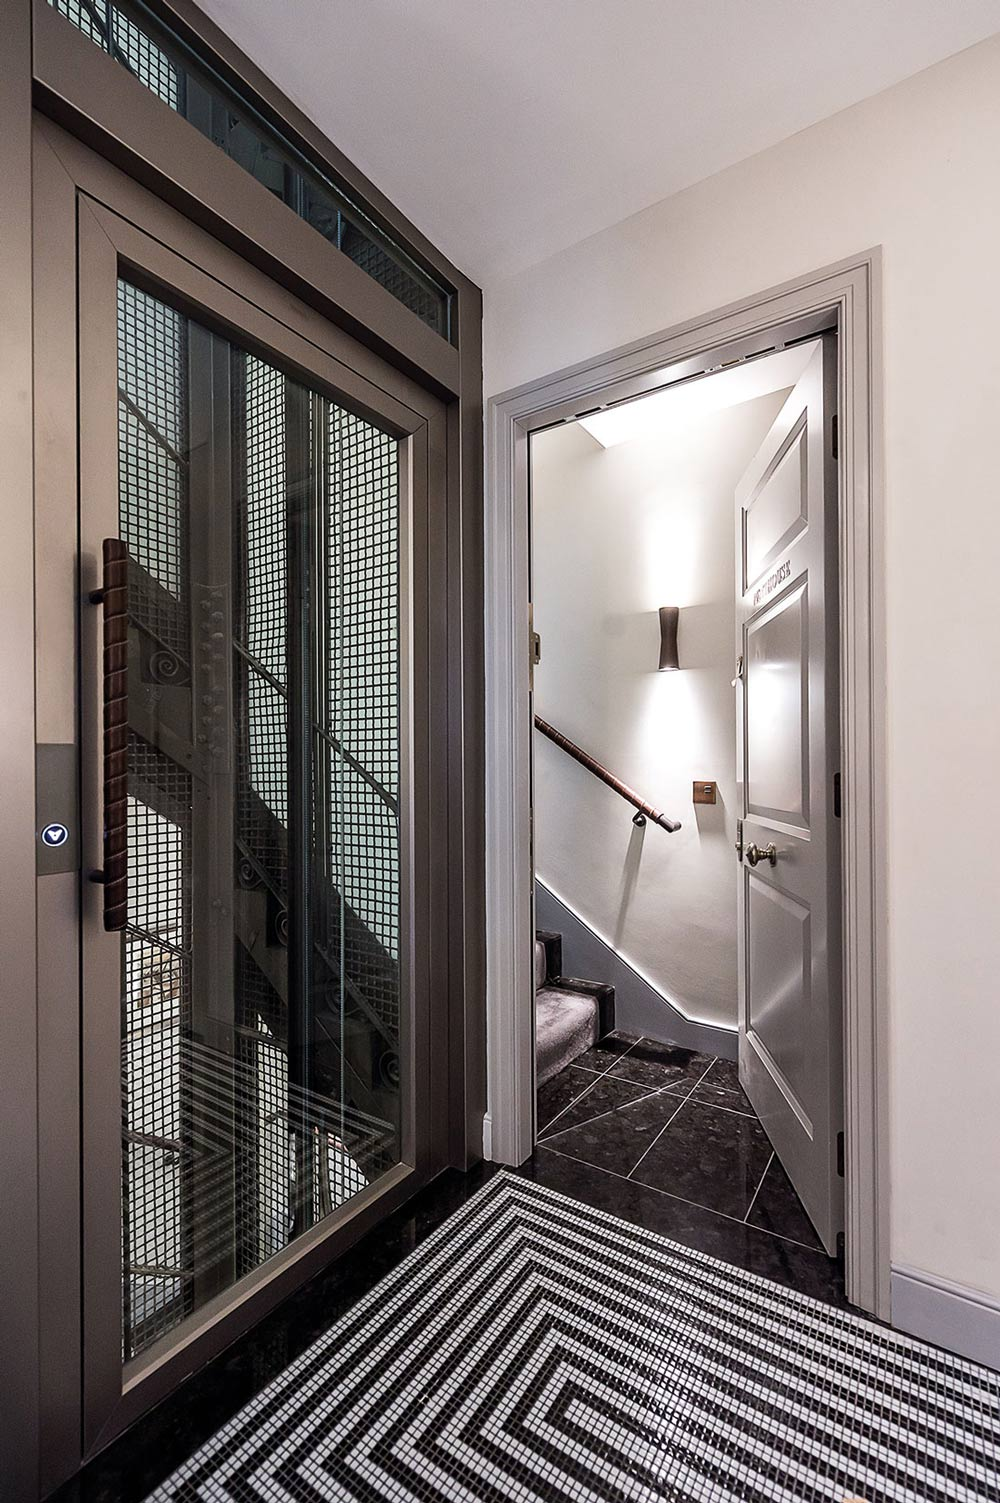 Elevator, Tiled Floor, Front Door, Penthouse Apartment in St James's, London